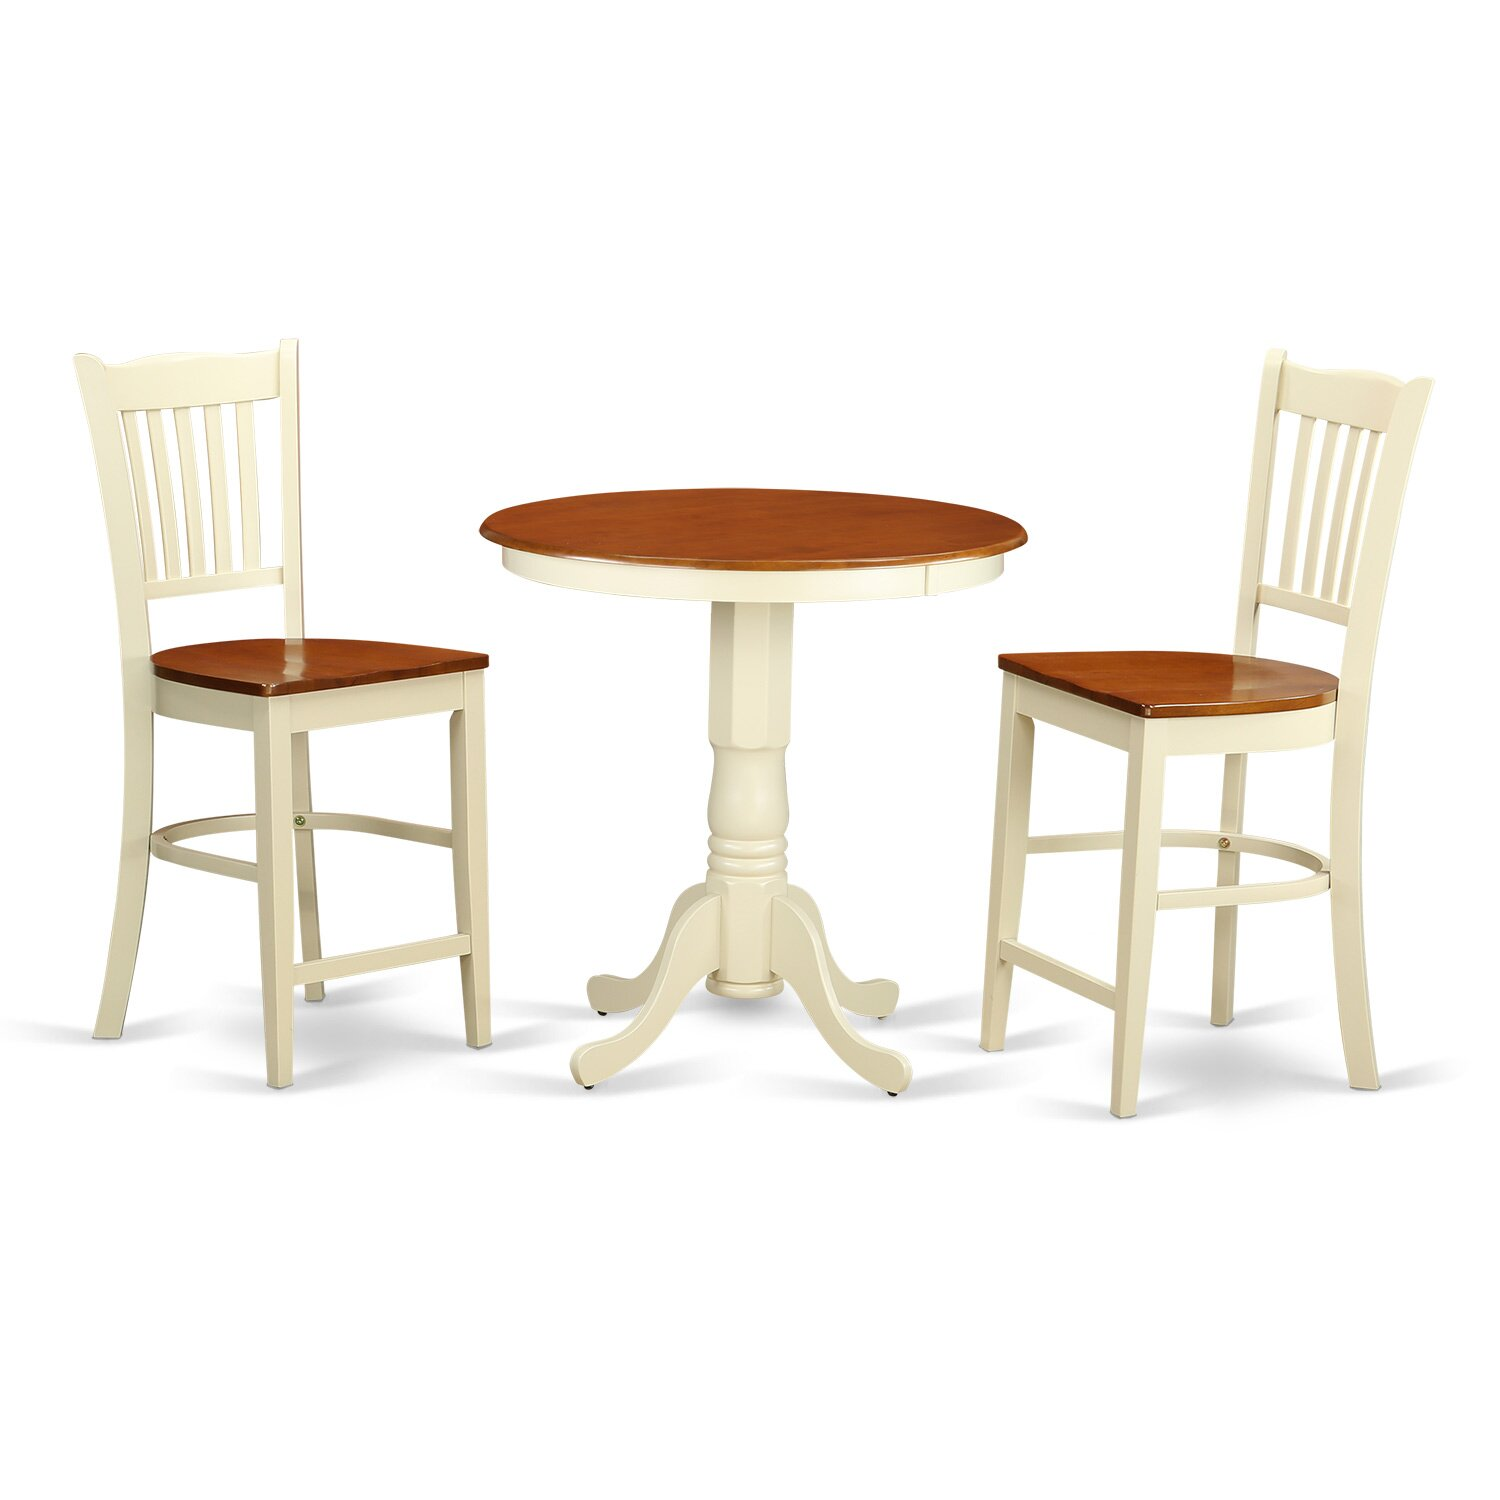 Roundhill Furniture 3 Piece Counter Height Pub Table Set: East West Eden 3 Piece Counter Height Pub Table Set